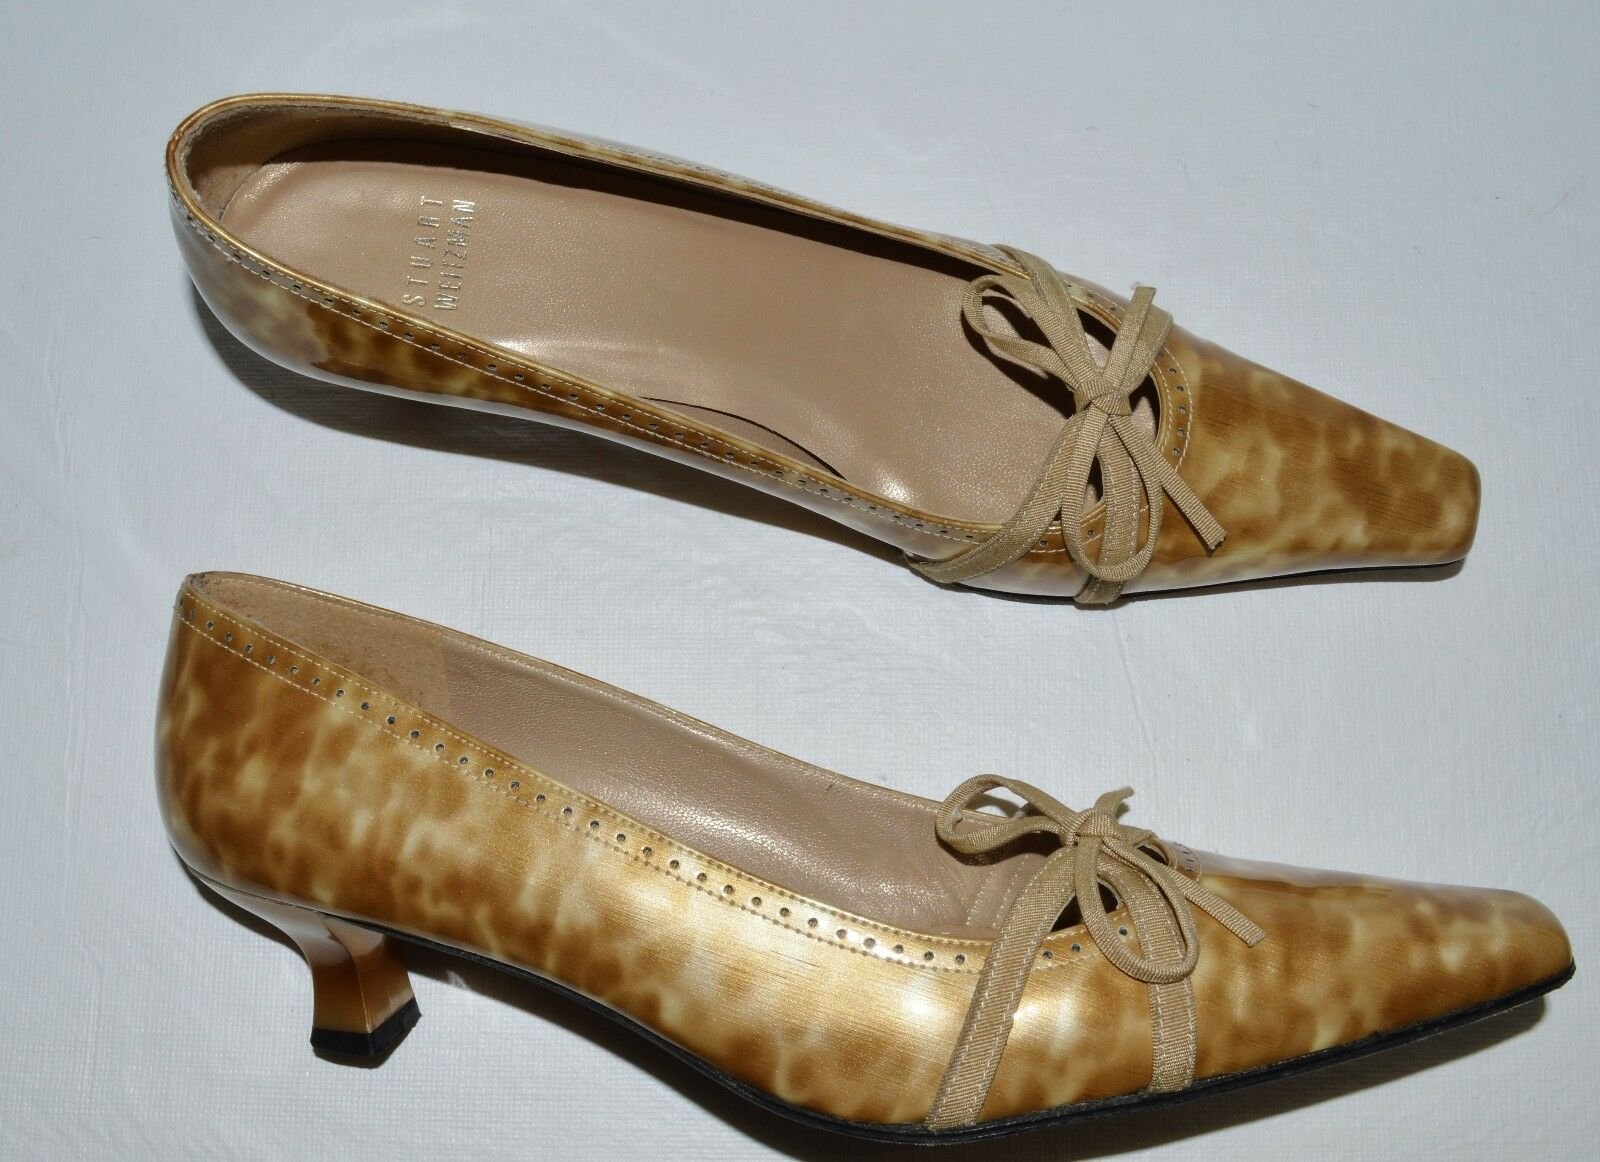 STUART WEITZMAN SZ 8 N TORTOISE PATENT LEATHER PUMPS HEELS DRESS Schuhe SPAIN